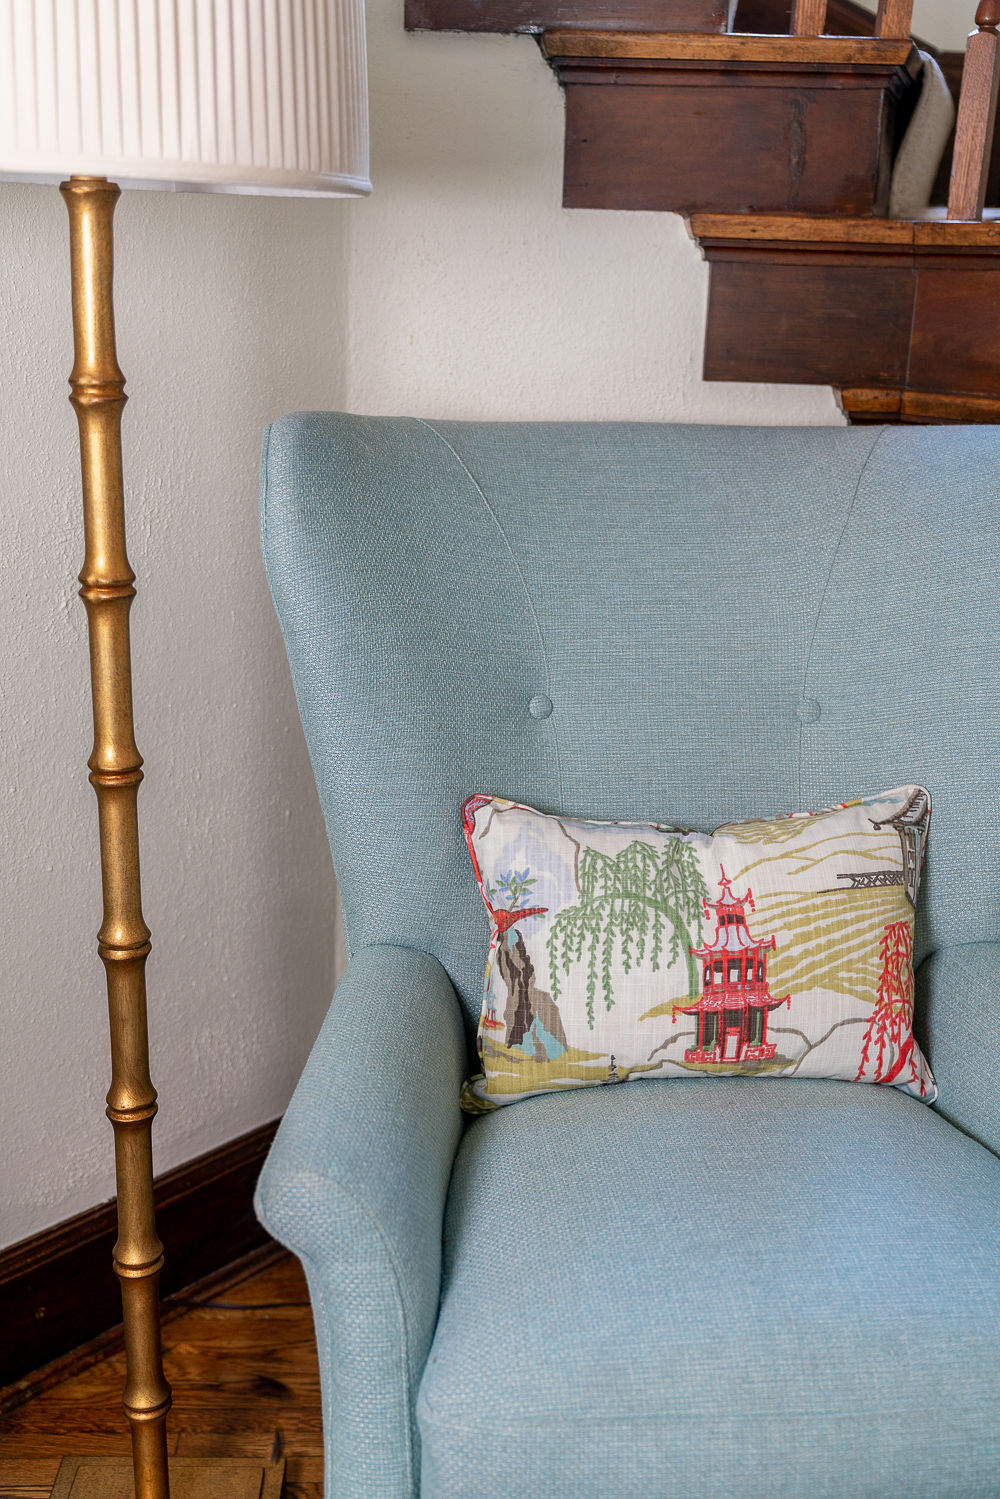 Armchair with pillow and golden lamp post